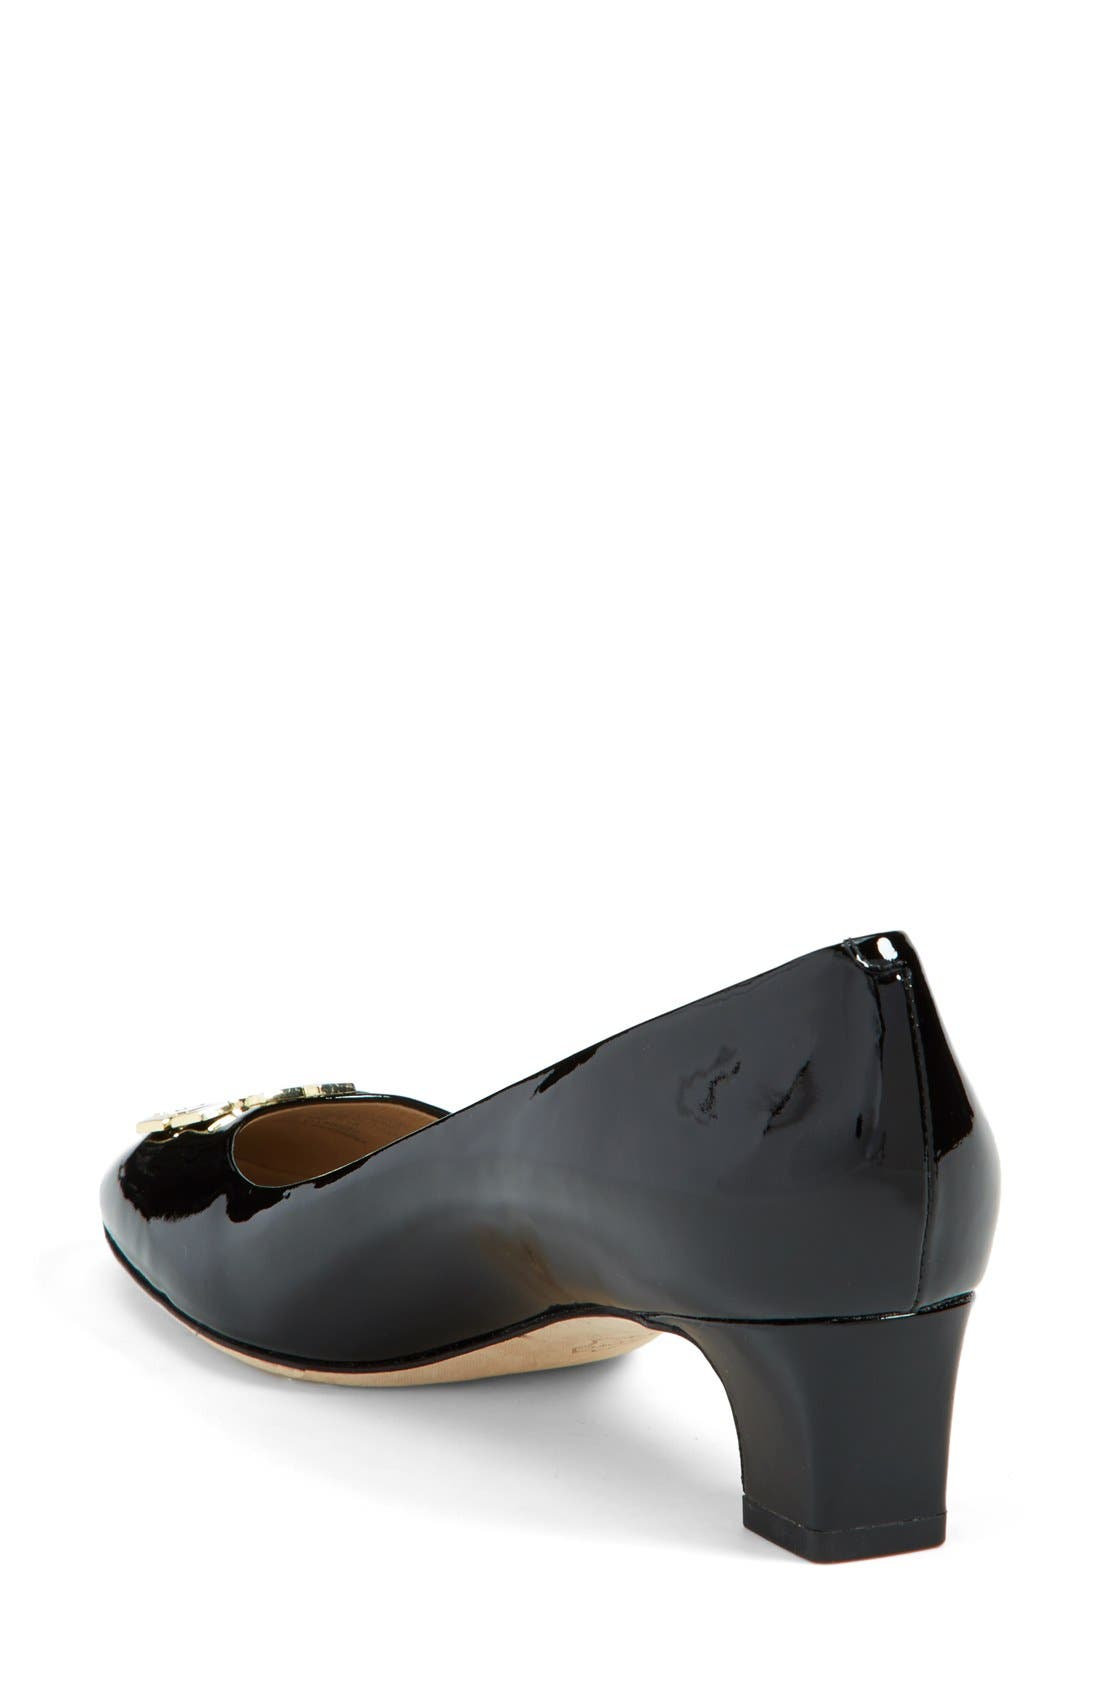 Alternate Image 2  - Tory Burch 'Raleigh' Patent Leather Pump (Women)